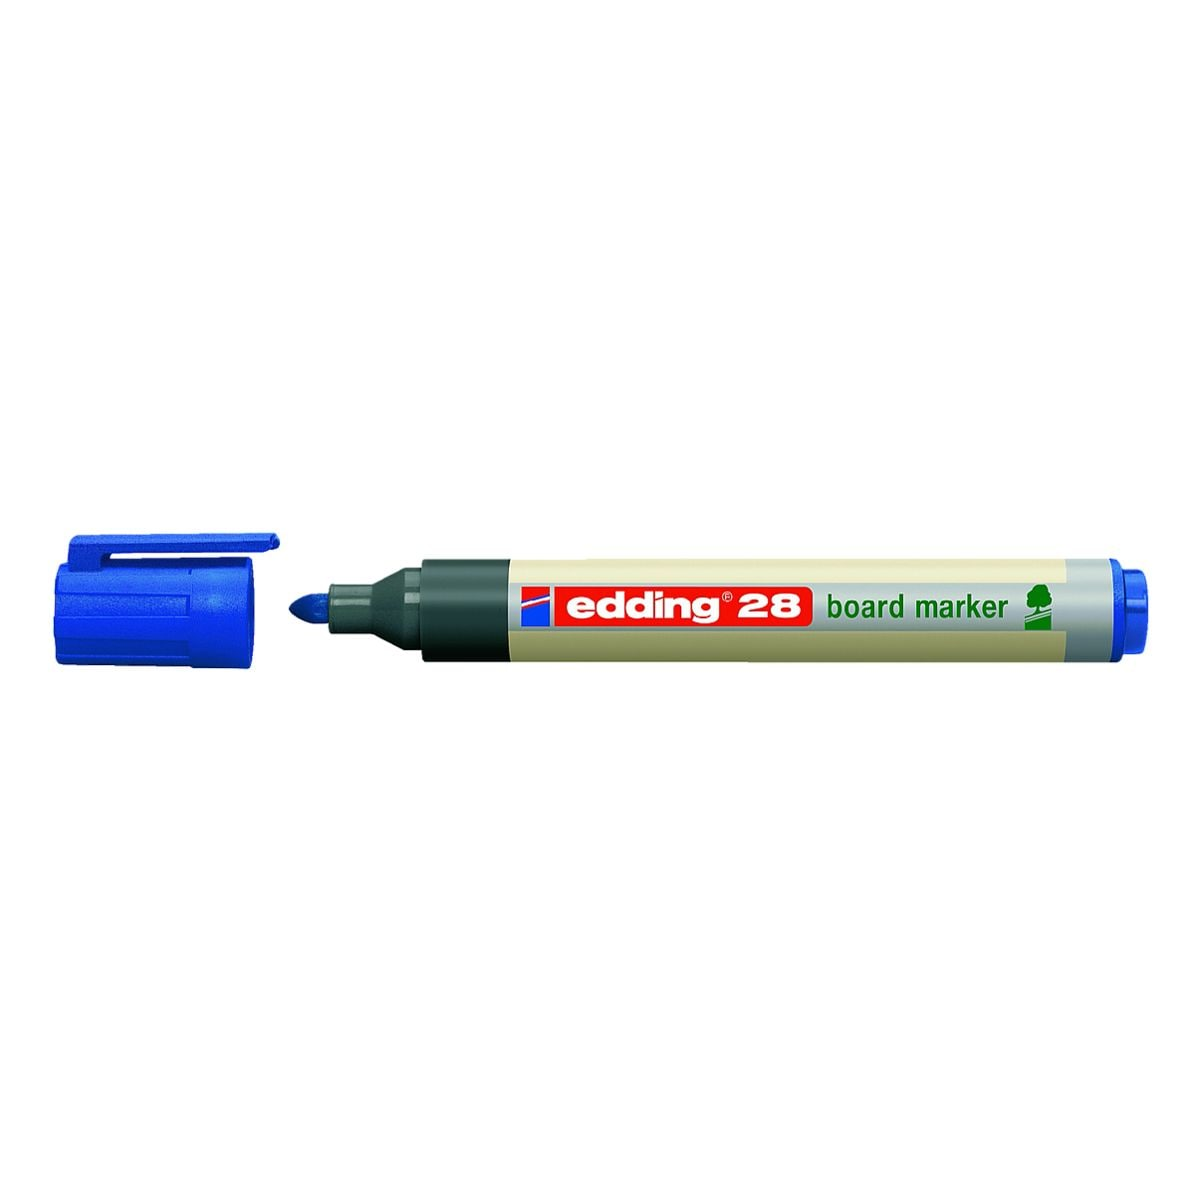 Whiteboard Günstig Edding Whiteboard Marker 28 Ecoline Bei Otto Office